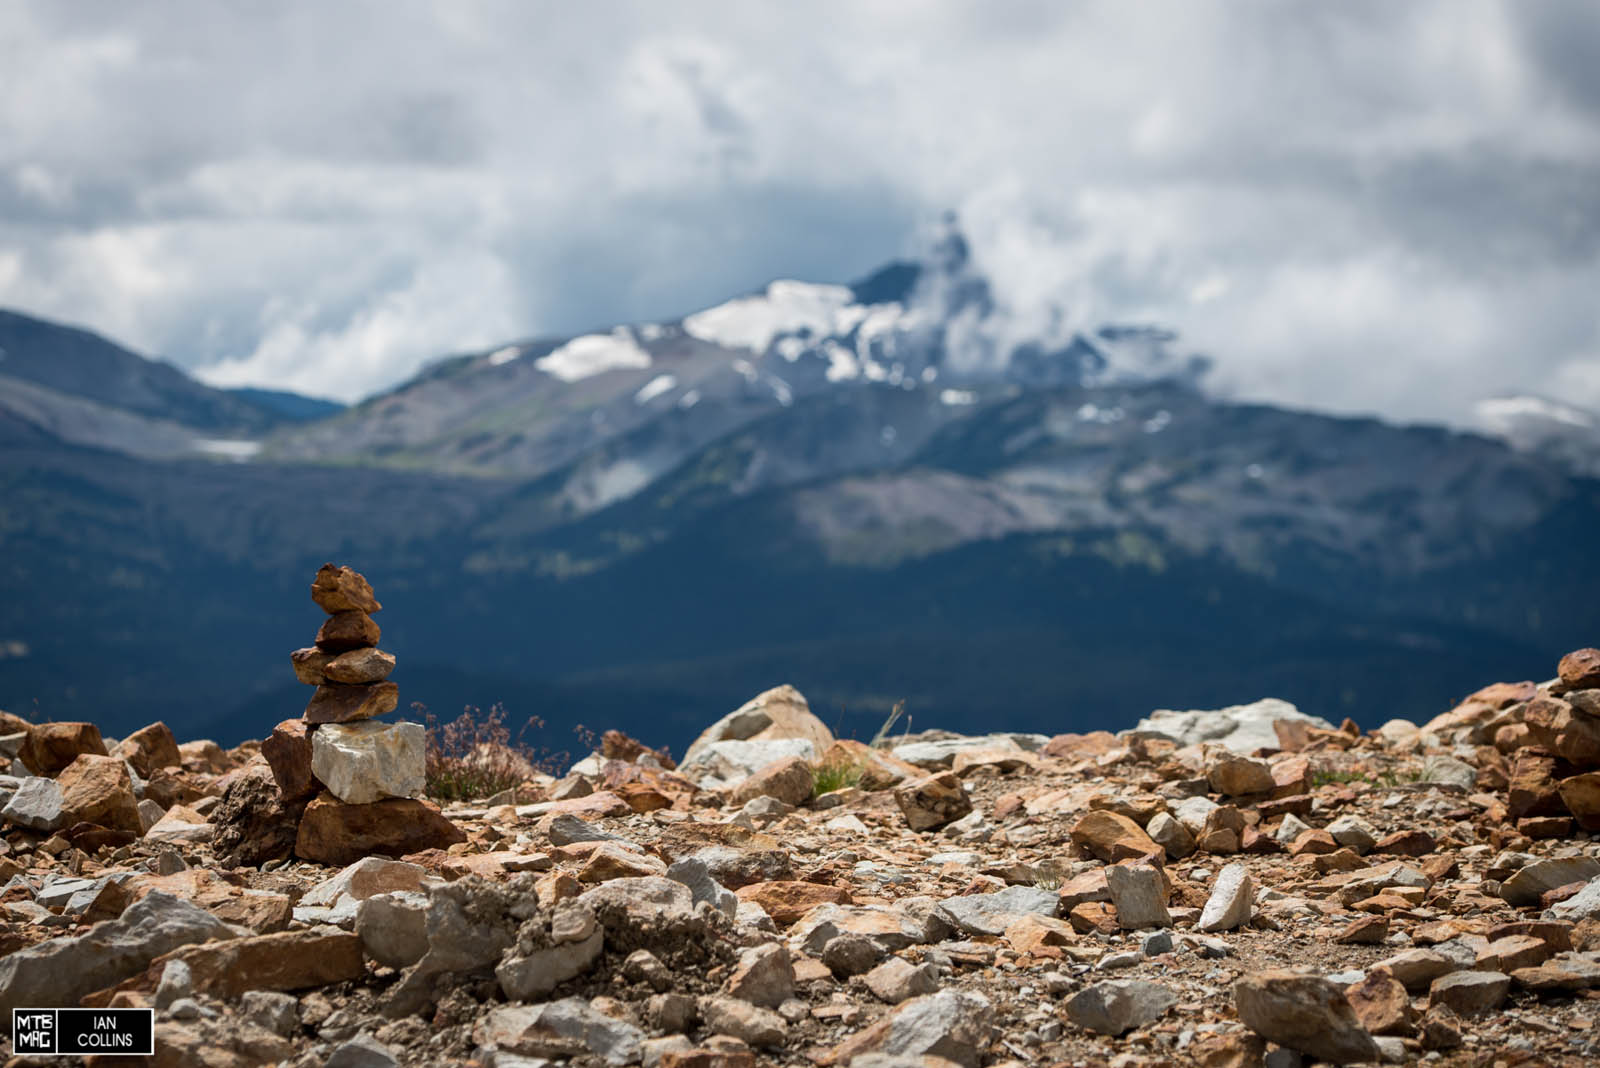 Rock piles with black tusk obscured by clouds in the background.